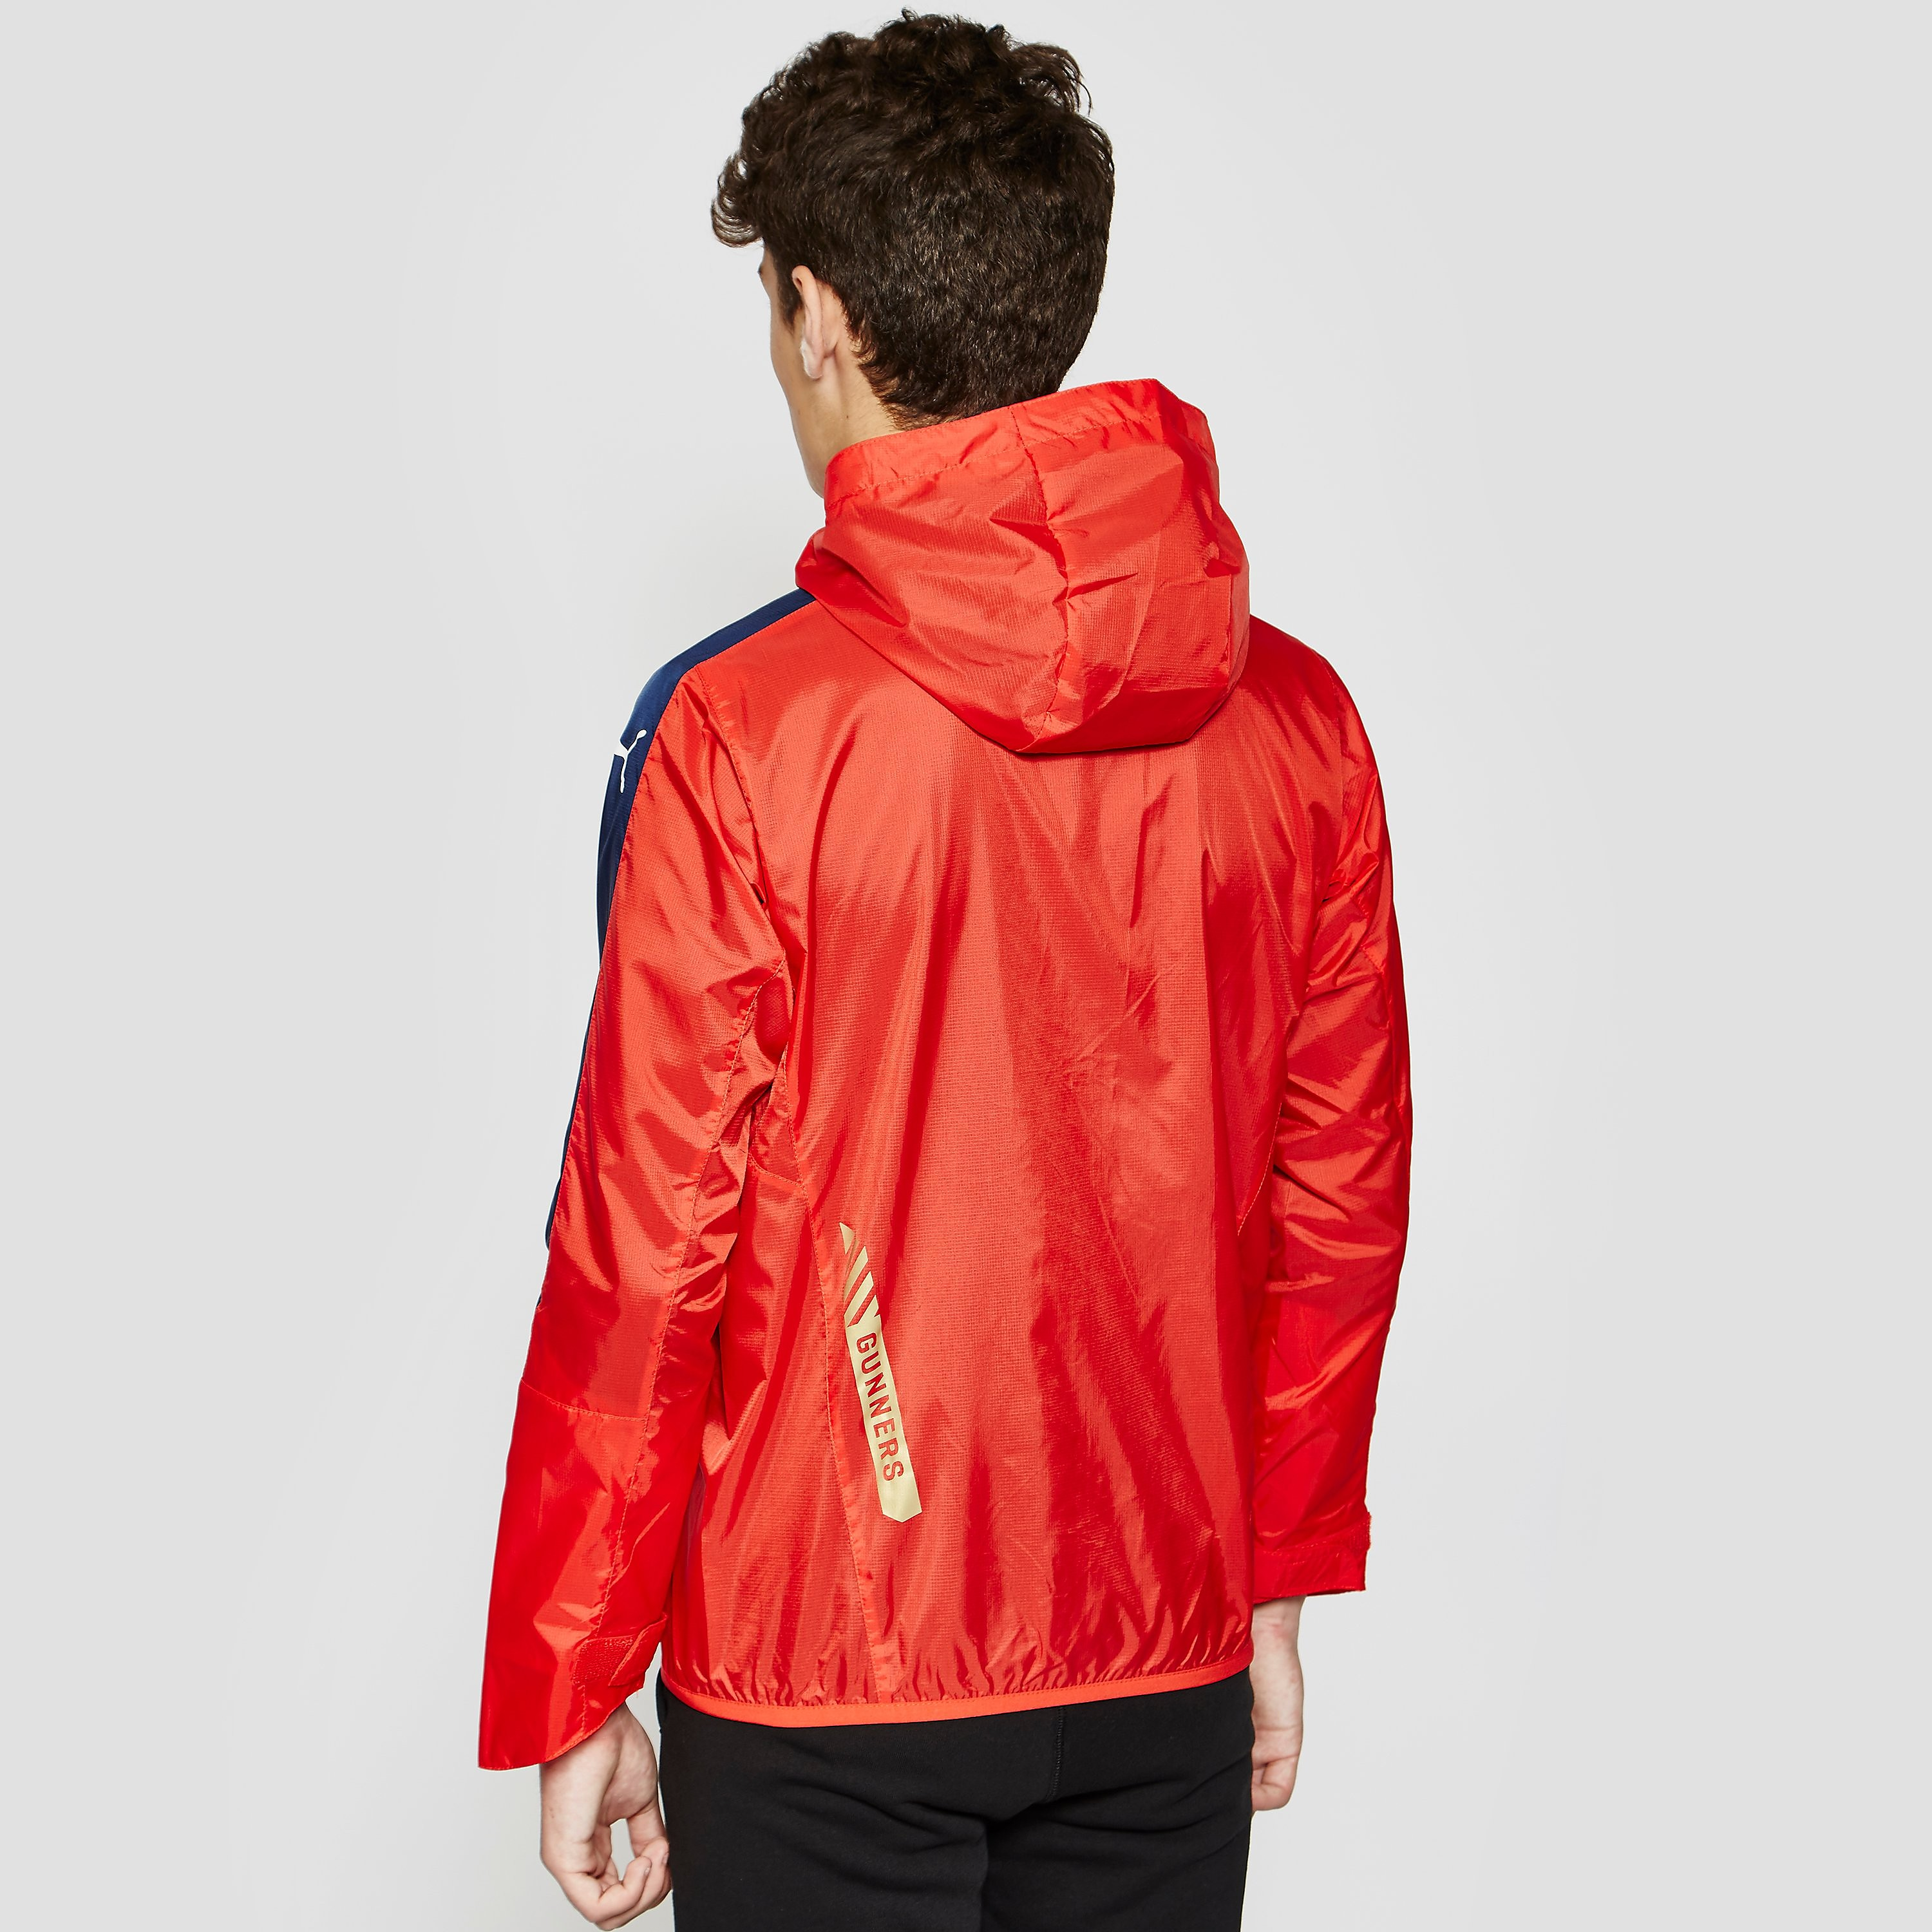 Puma ARSENAL 2015/16 Performance Rain Boy's Jacket